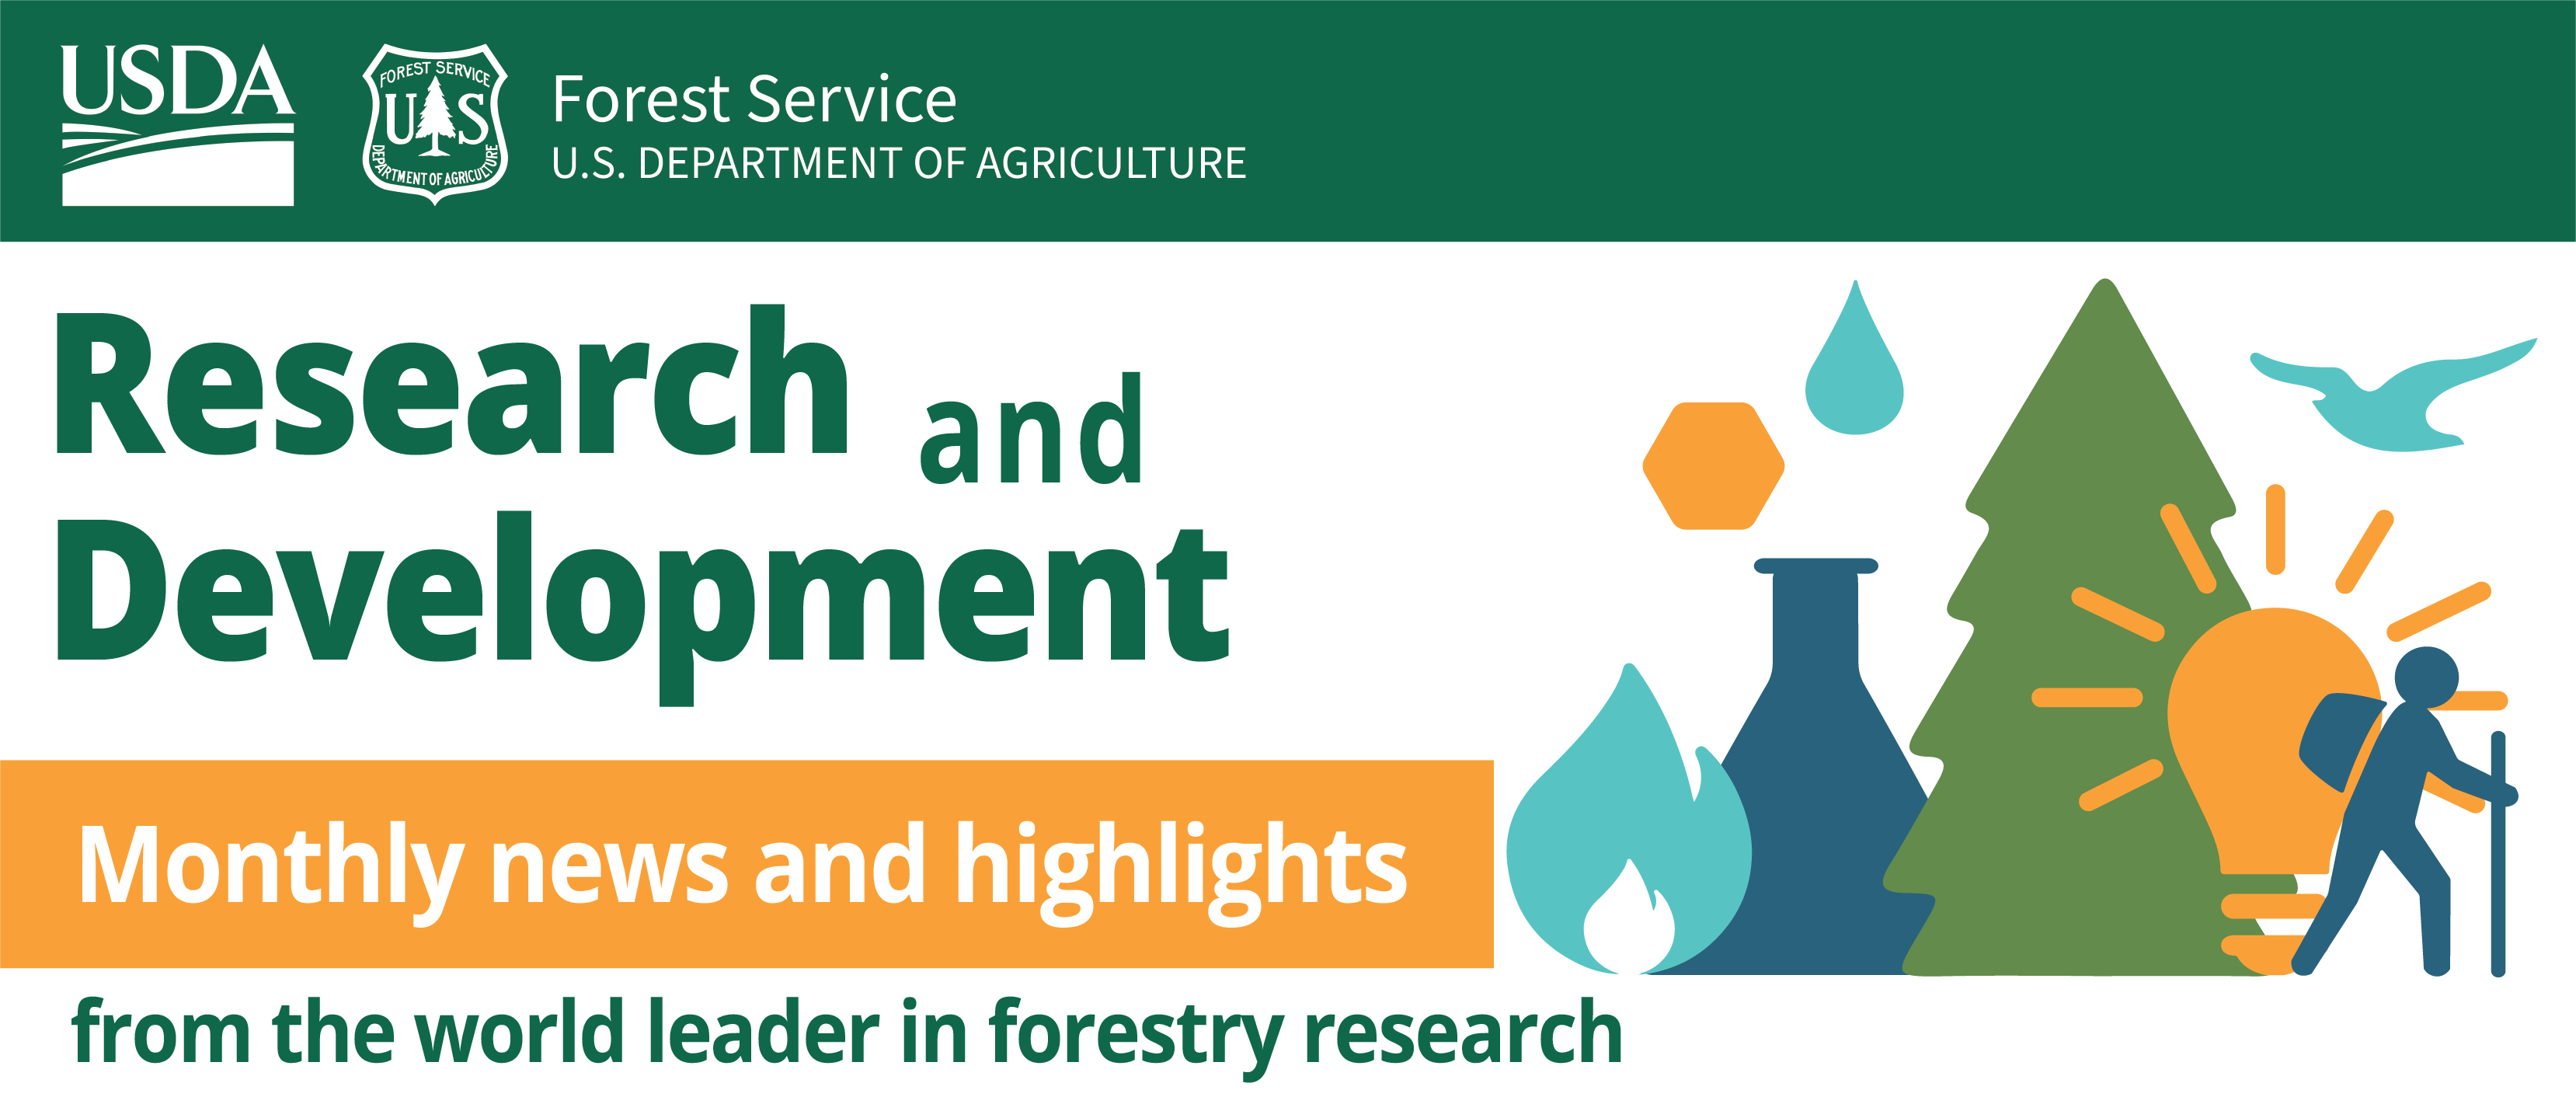 U.S. Forest Service Research and Development Monthly News and Highlights